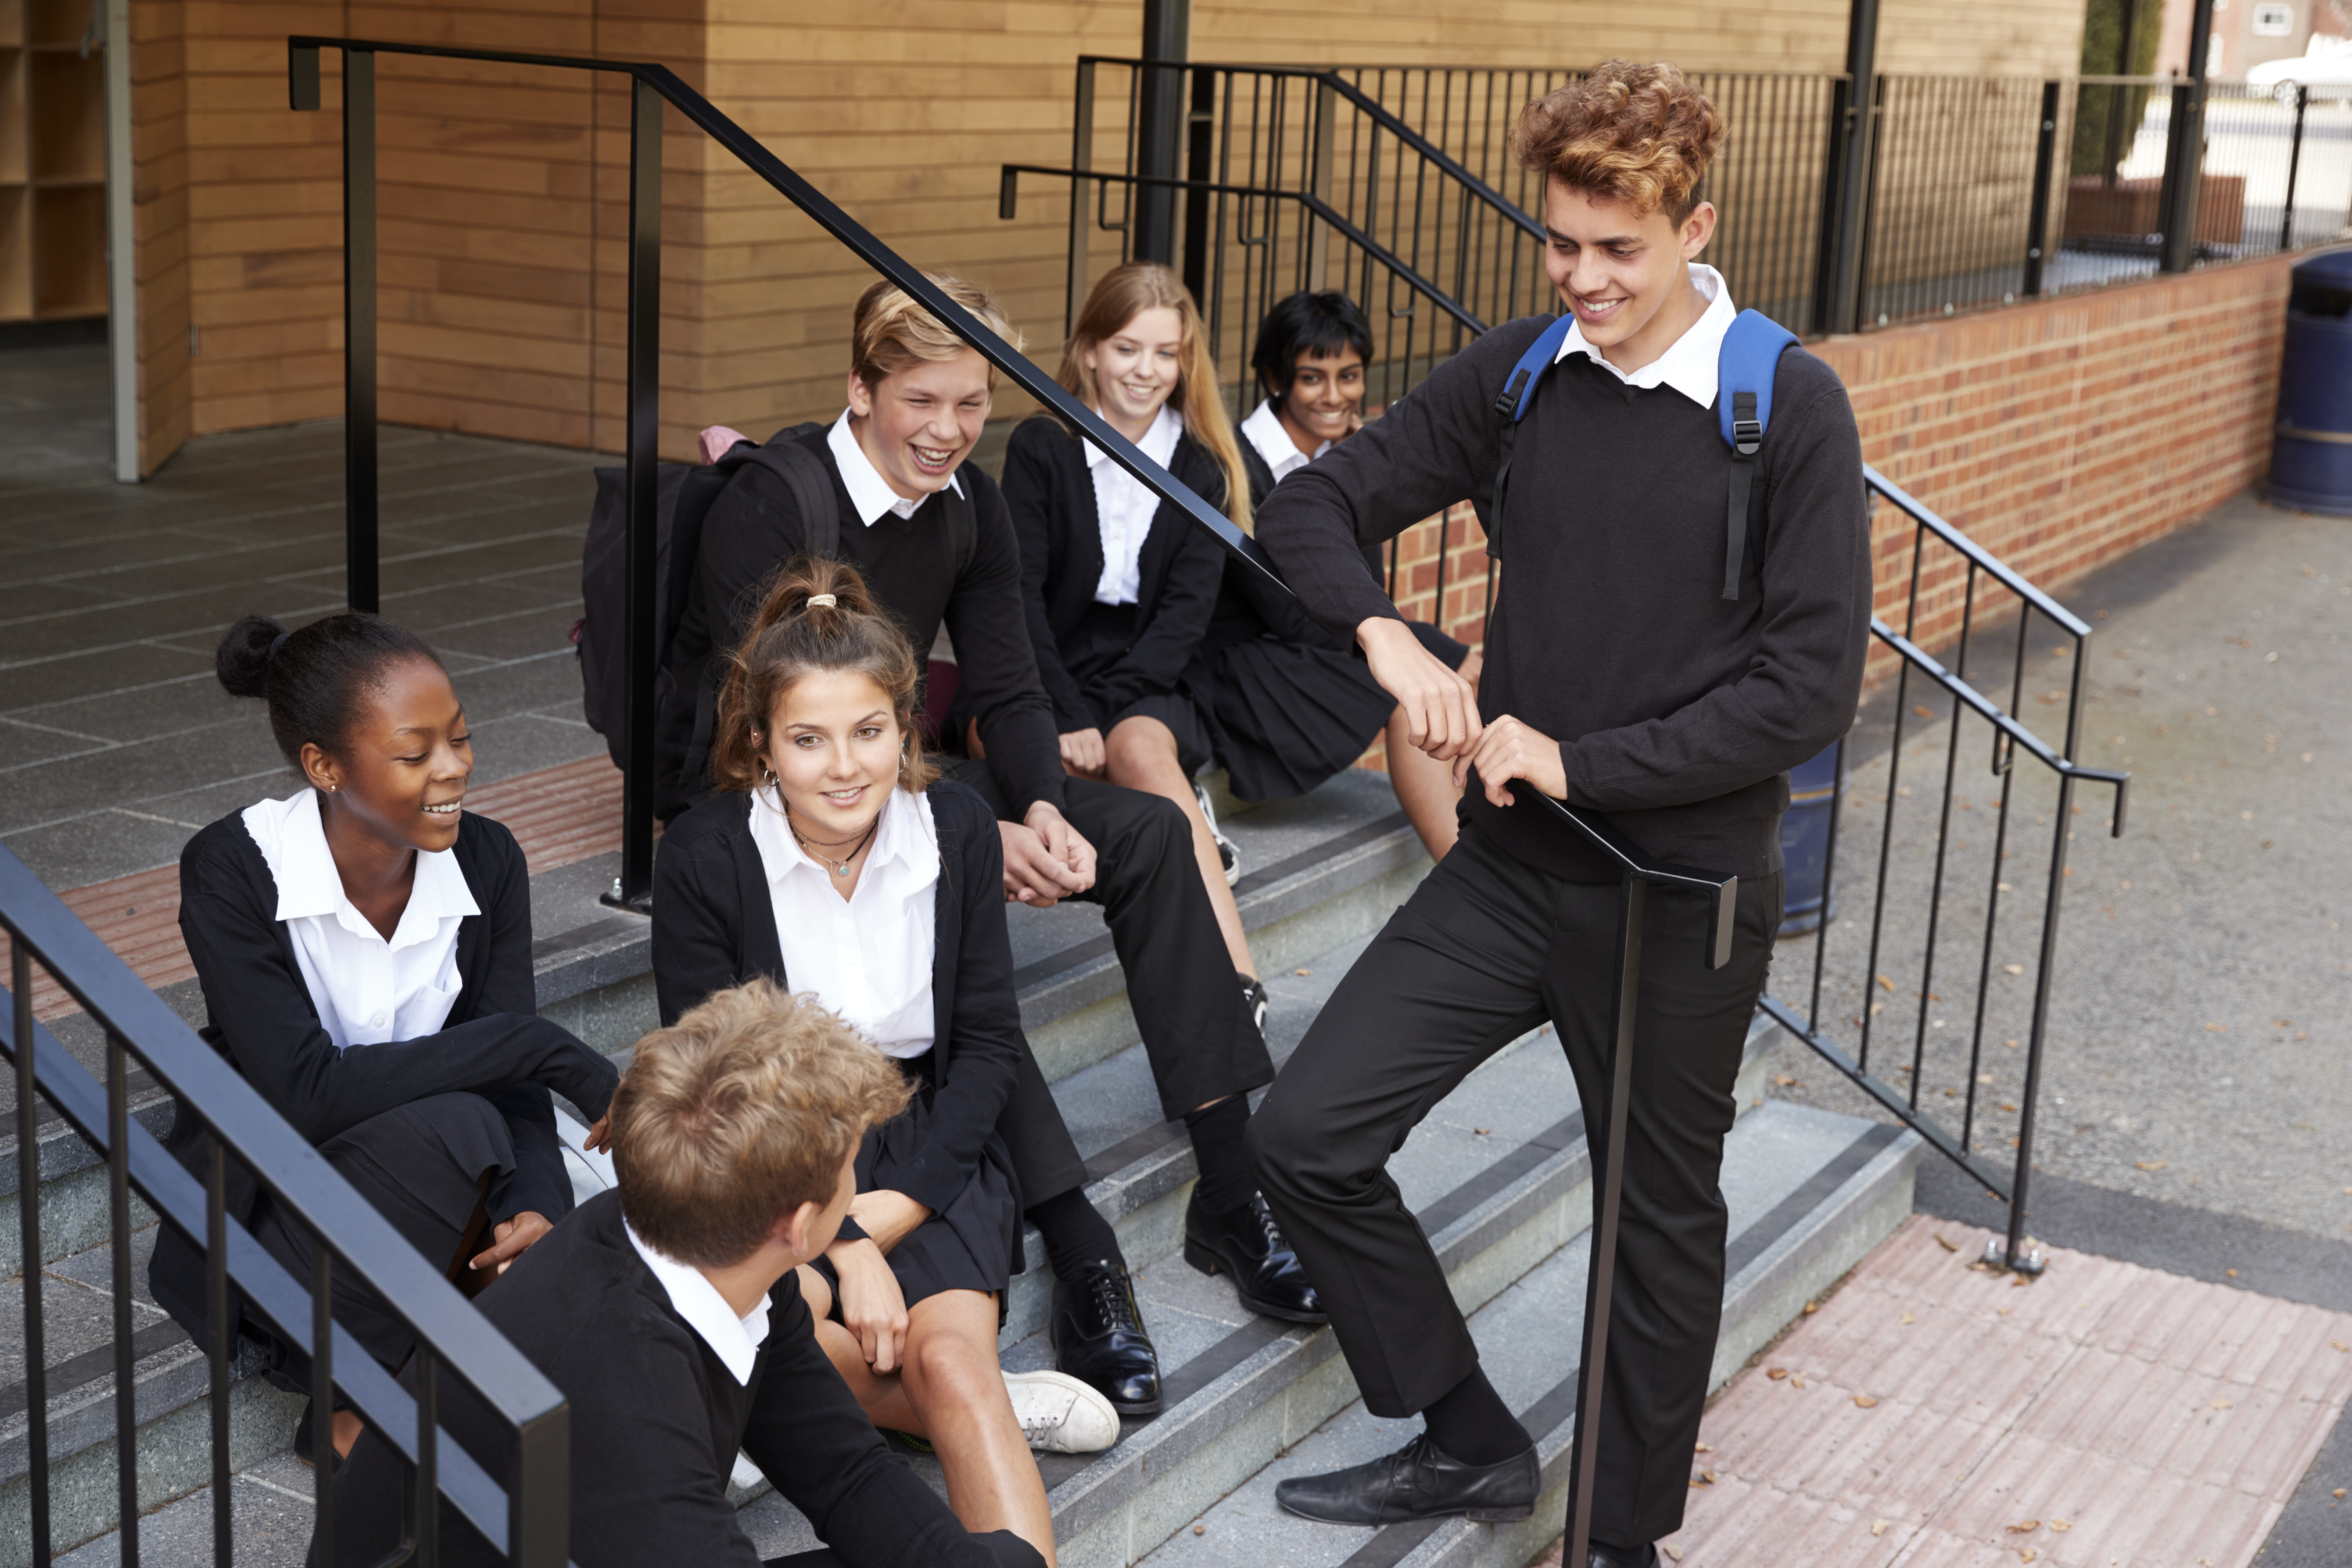 Group of students sitting on stairs talking about GCSE exams in uniform